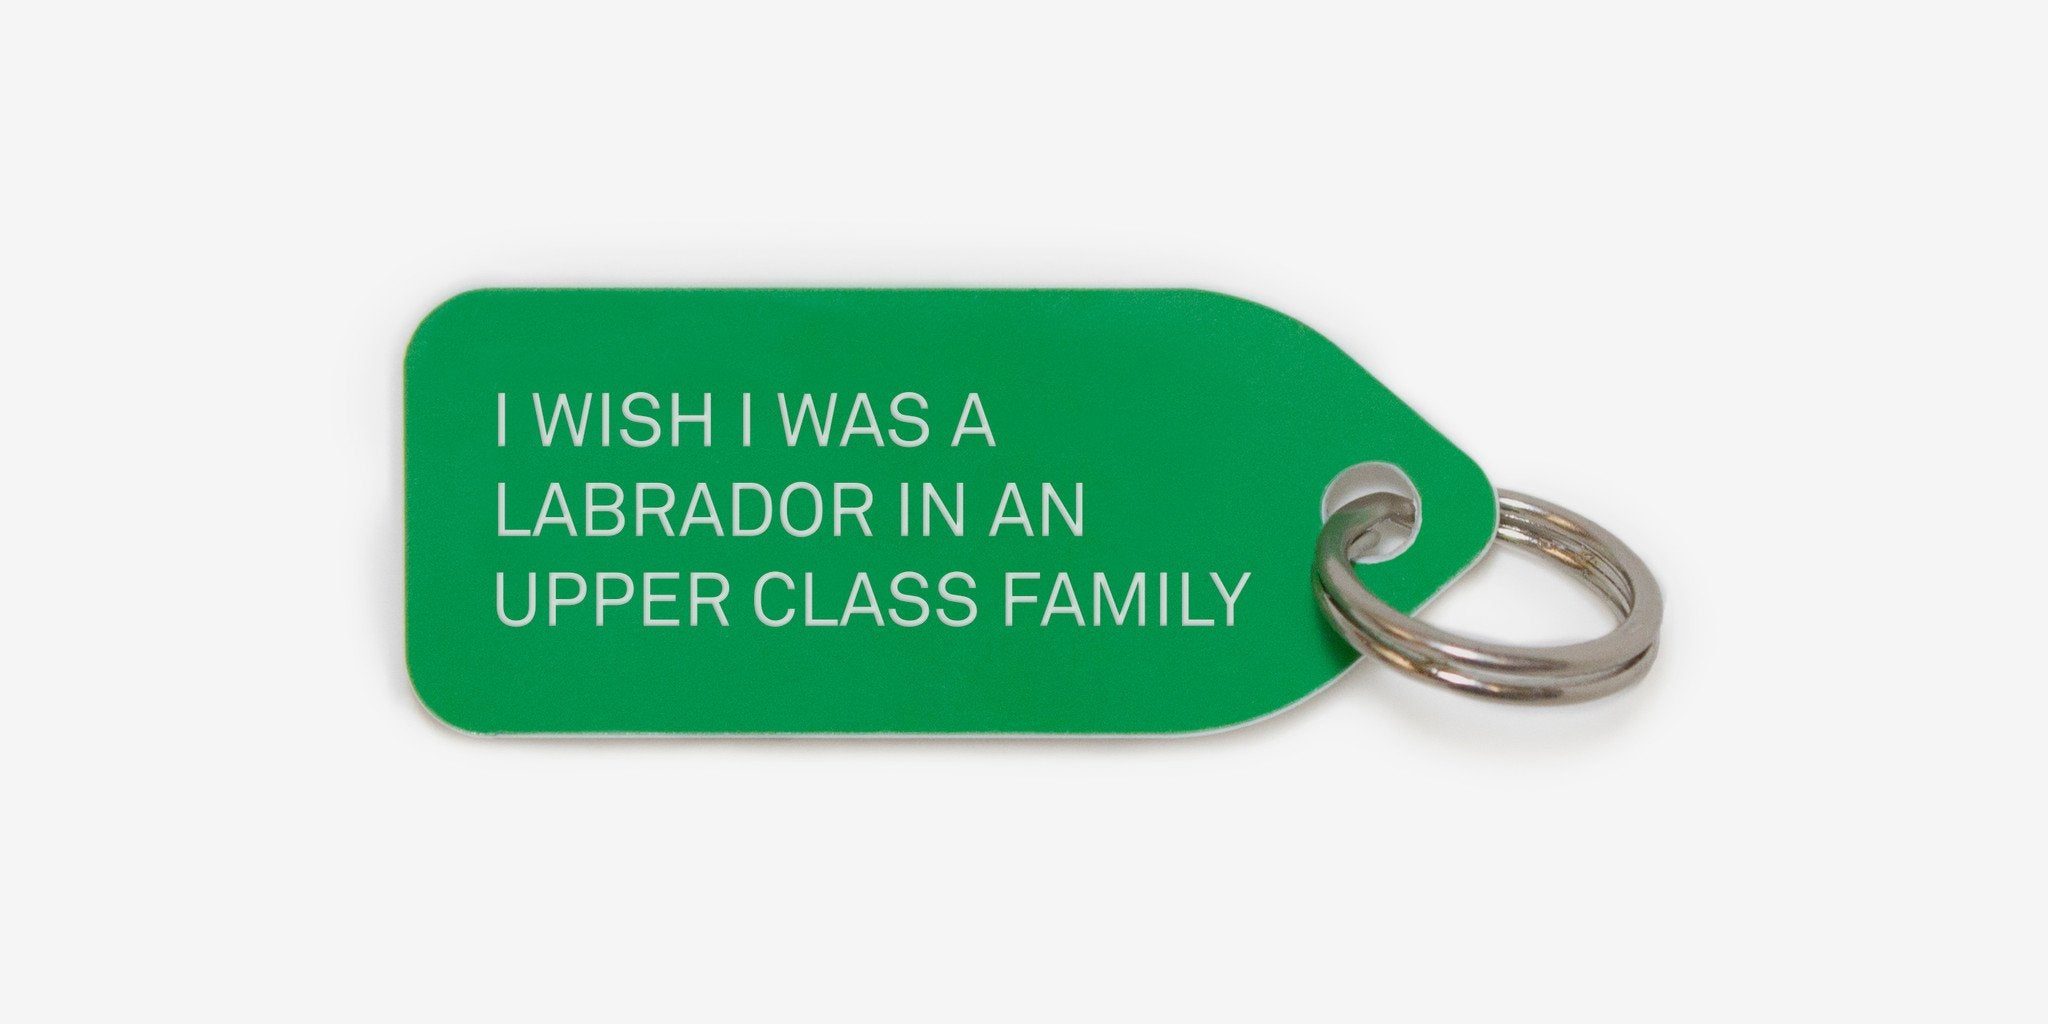 I wish I was a Labrador in an upper class family | dog tag | collar charm | Growlees